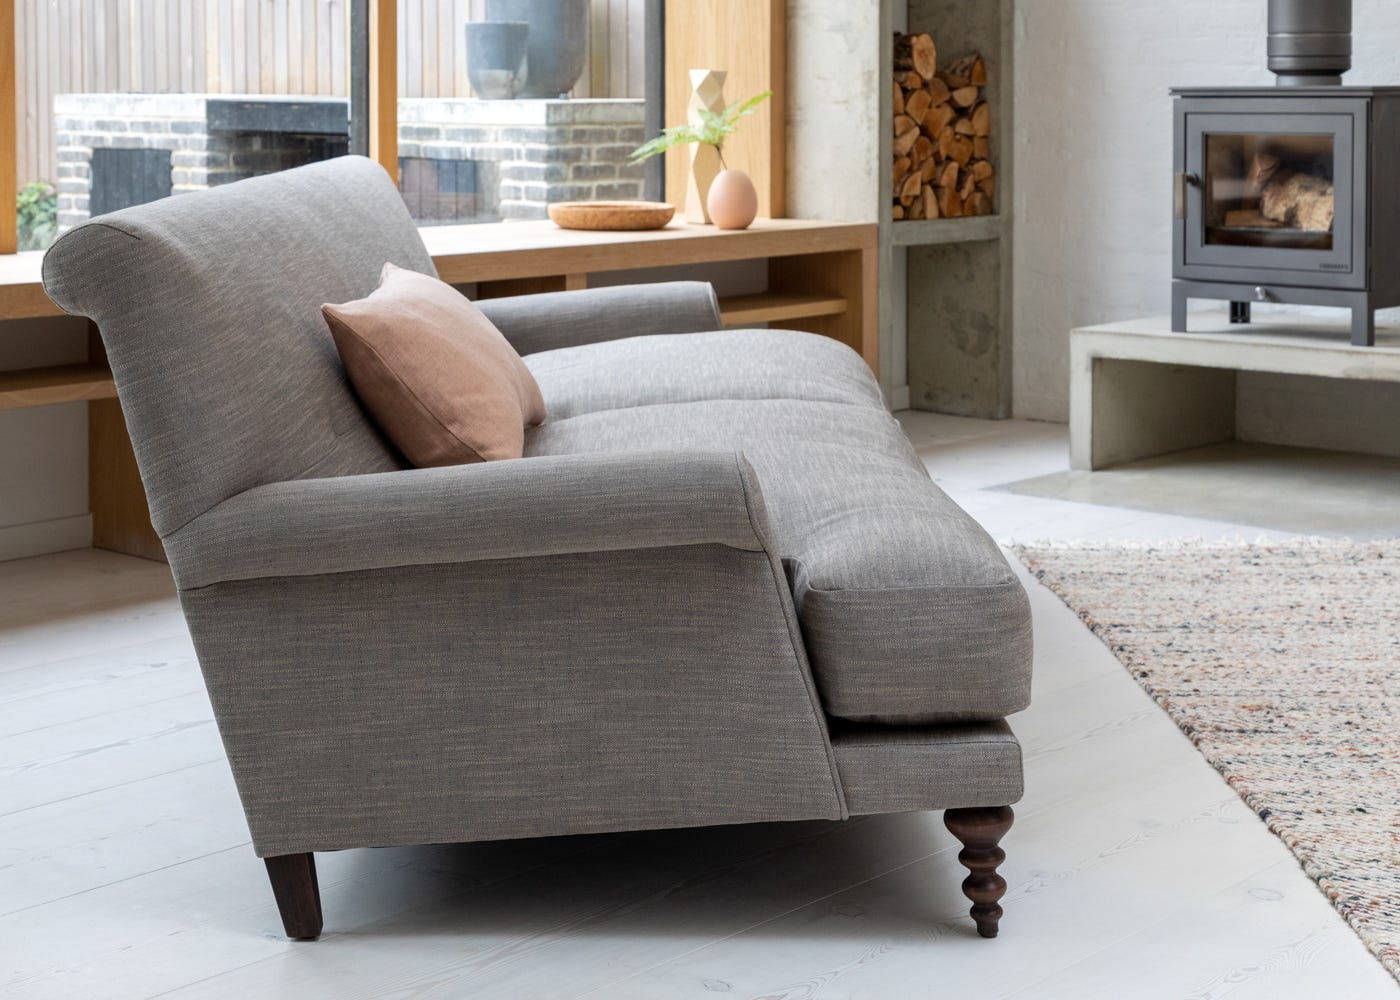 The Oscar Formal sofa offers a tall, upright position